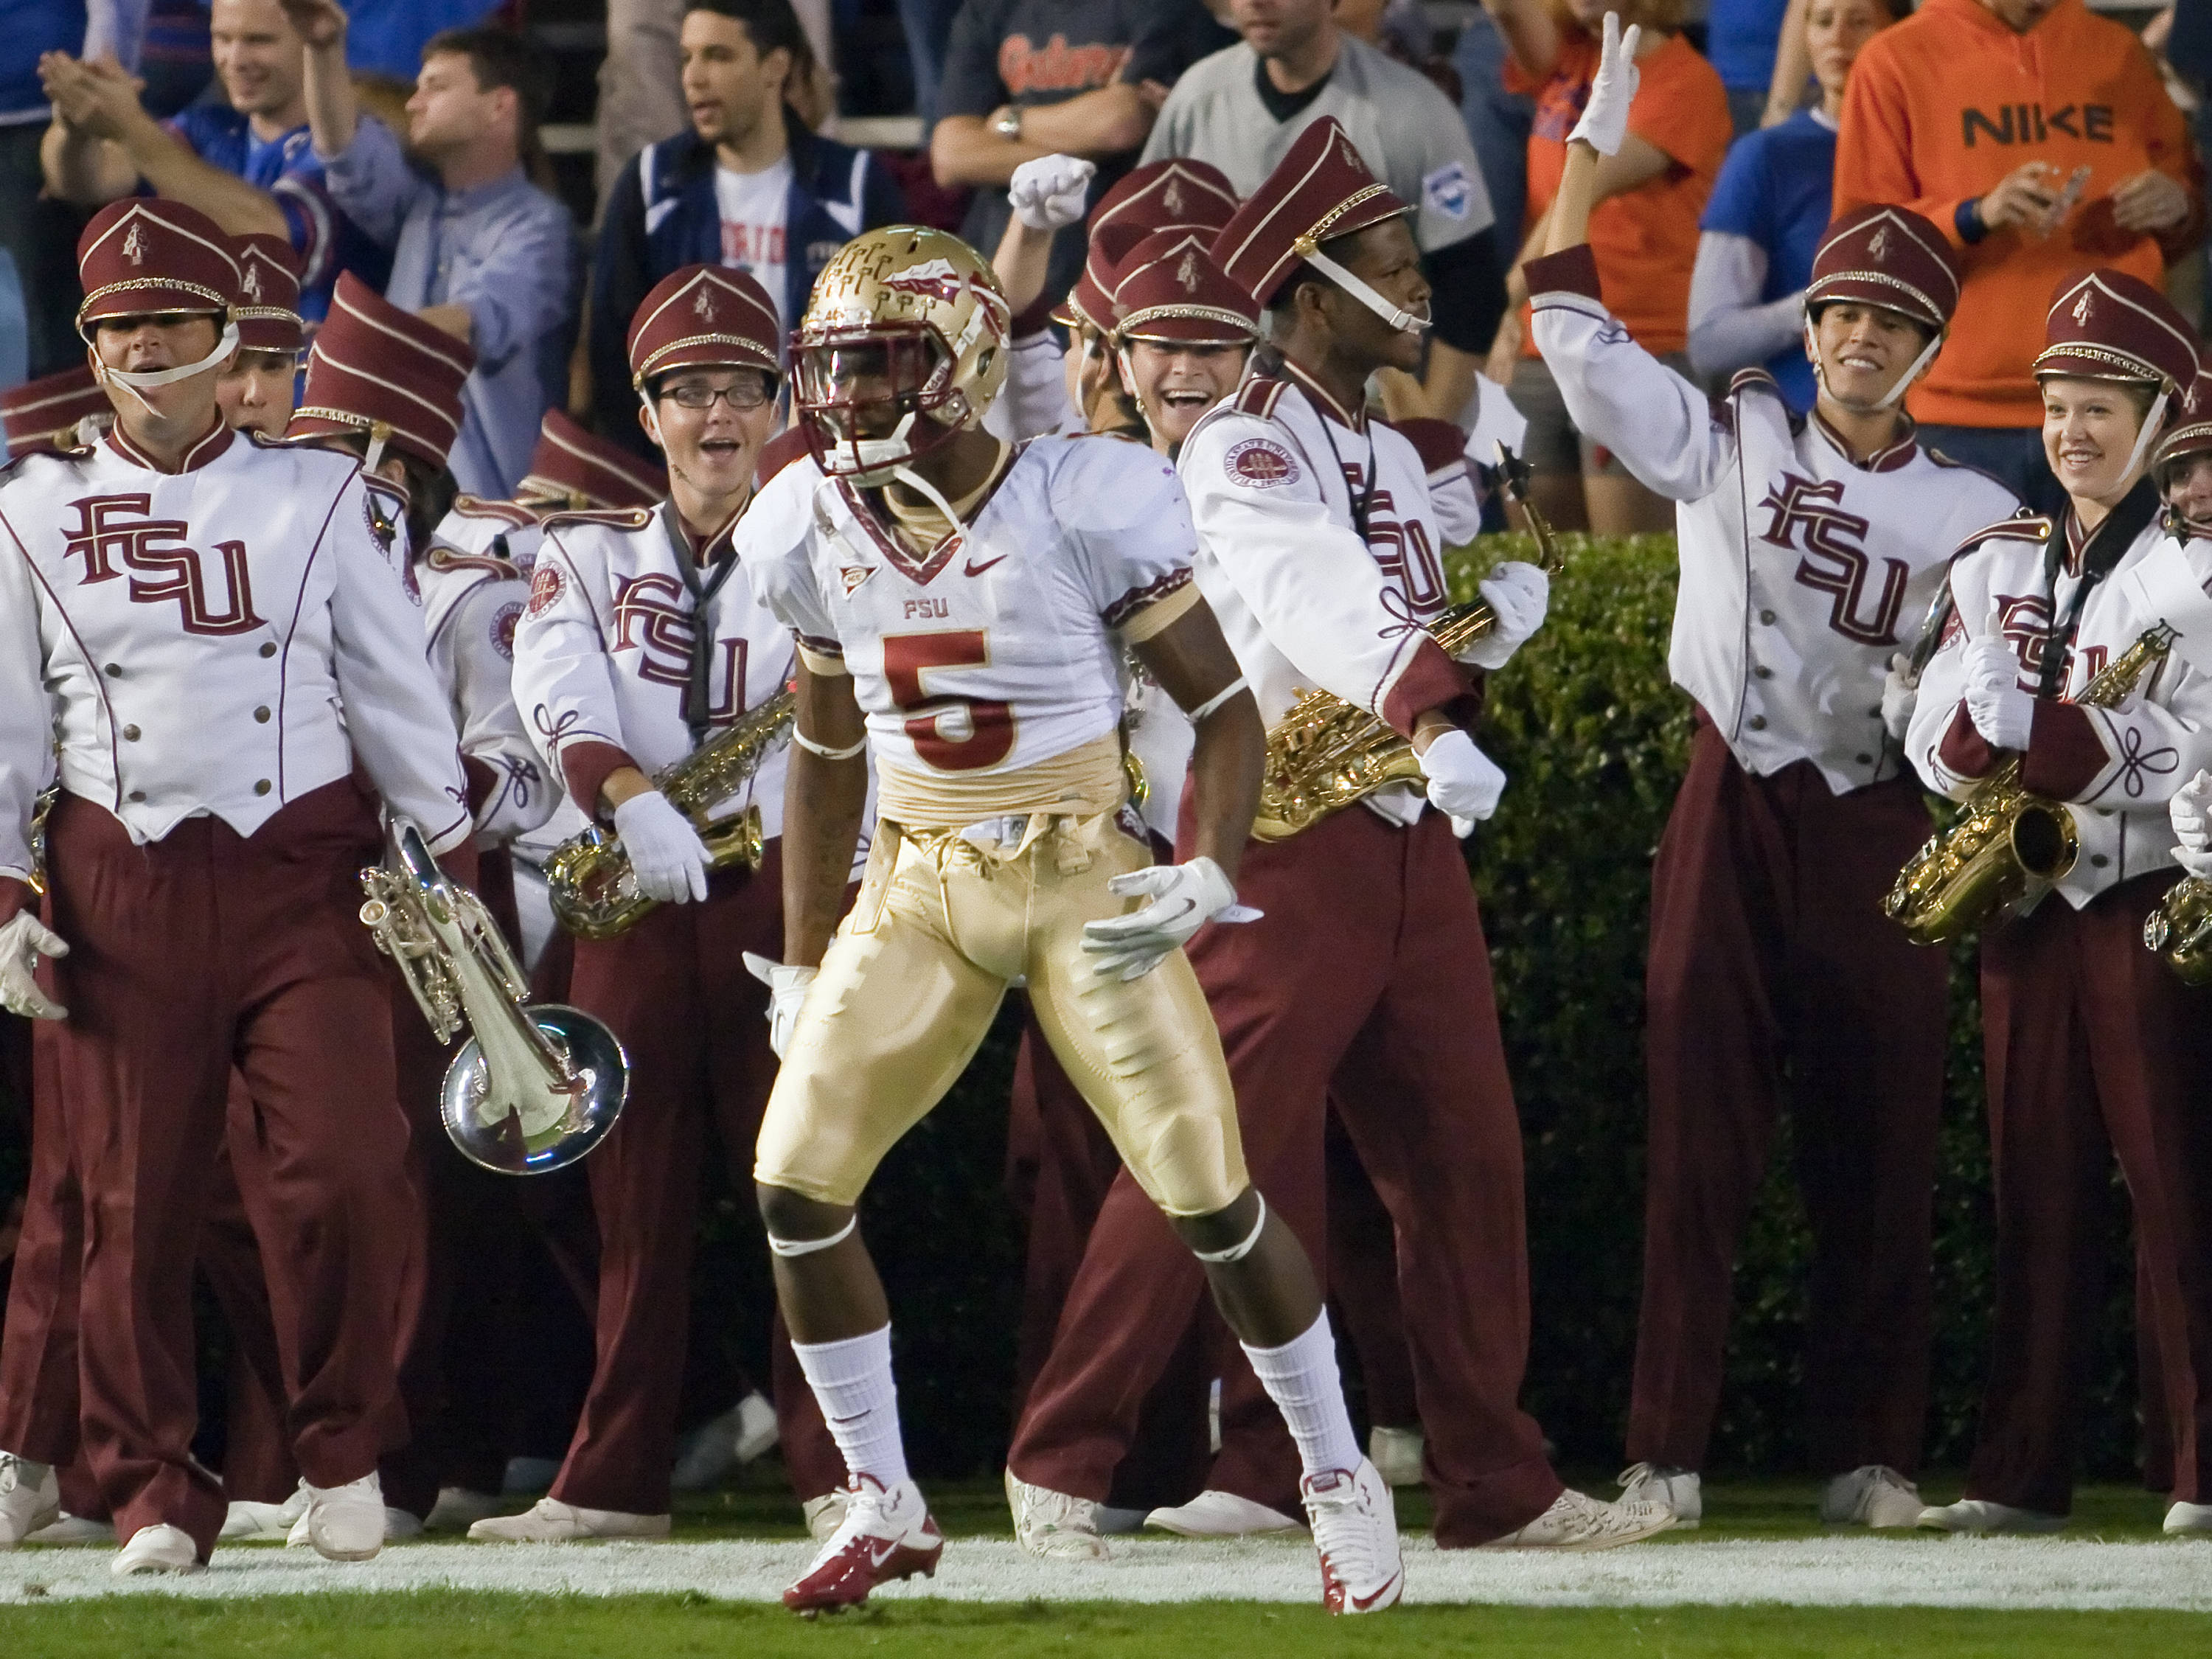 Greg Reid (5) with cheers from the Marching Chiefs, FSU vs Florida, 11/26/2011